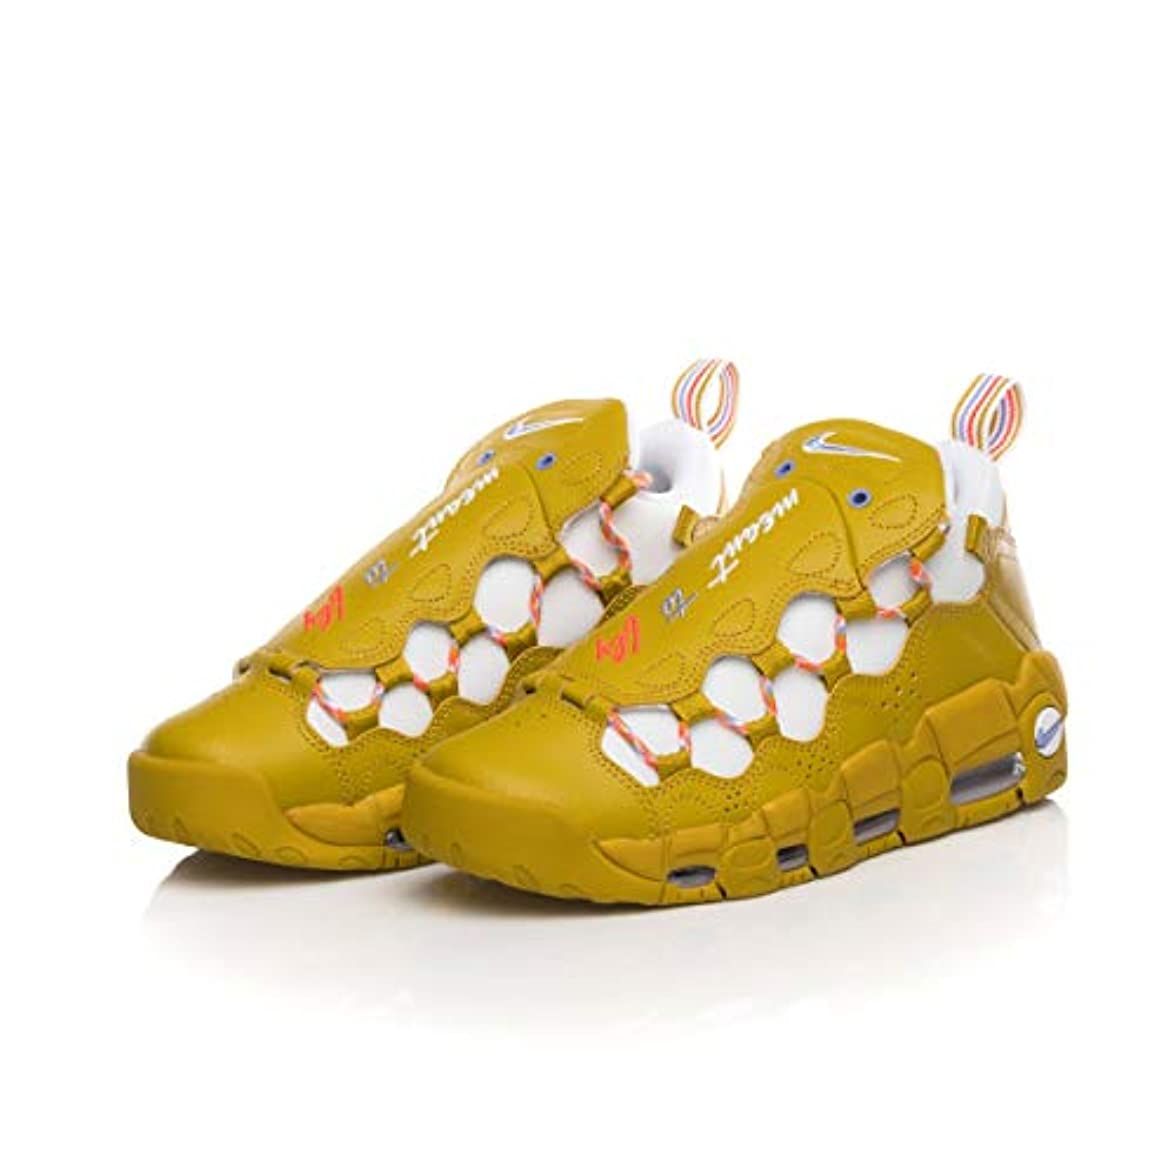 Meant Ao1749-300dark Nike Fly Air More Pulse Citron Womens White Money To Twilight